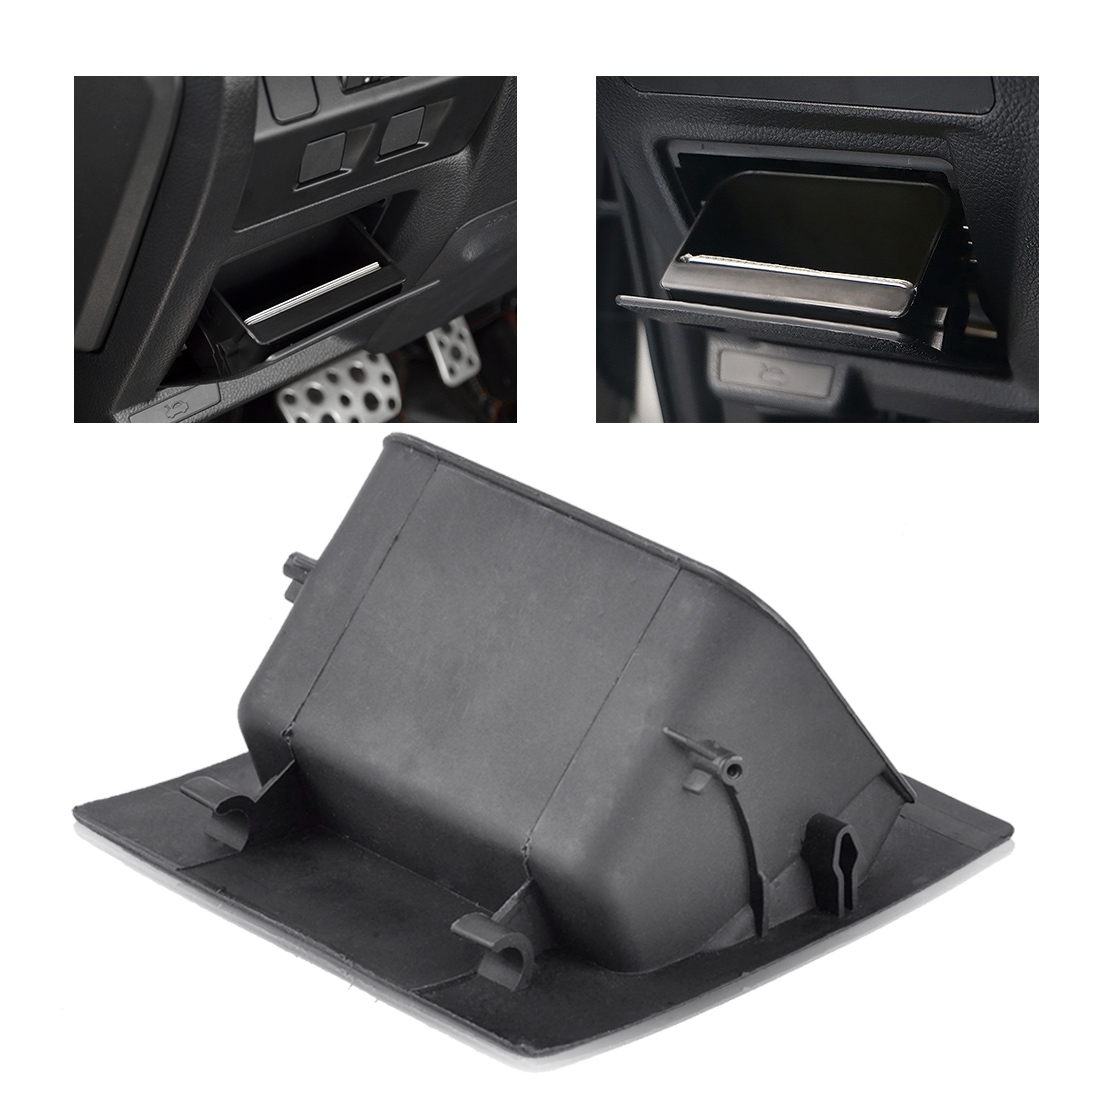 Interior Fuse Cover Storage Tray Container Holder Fit